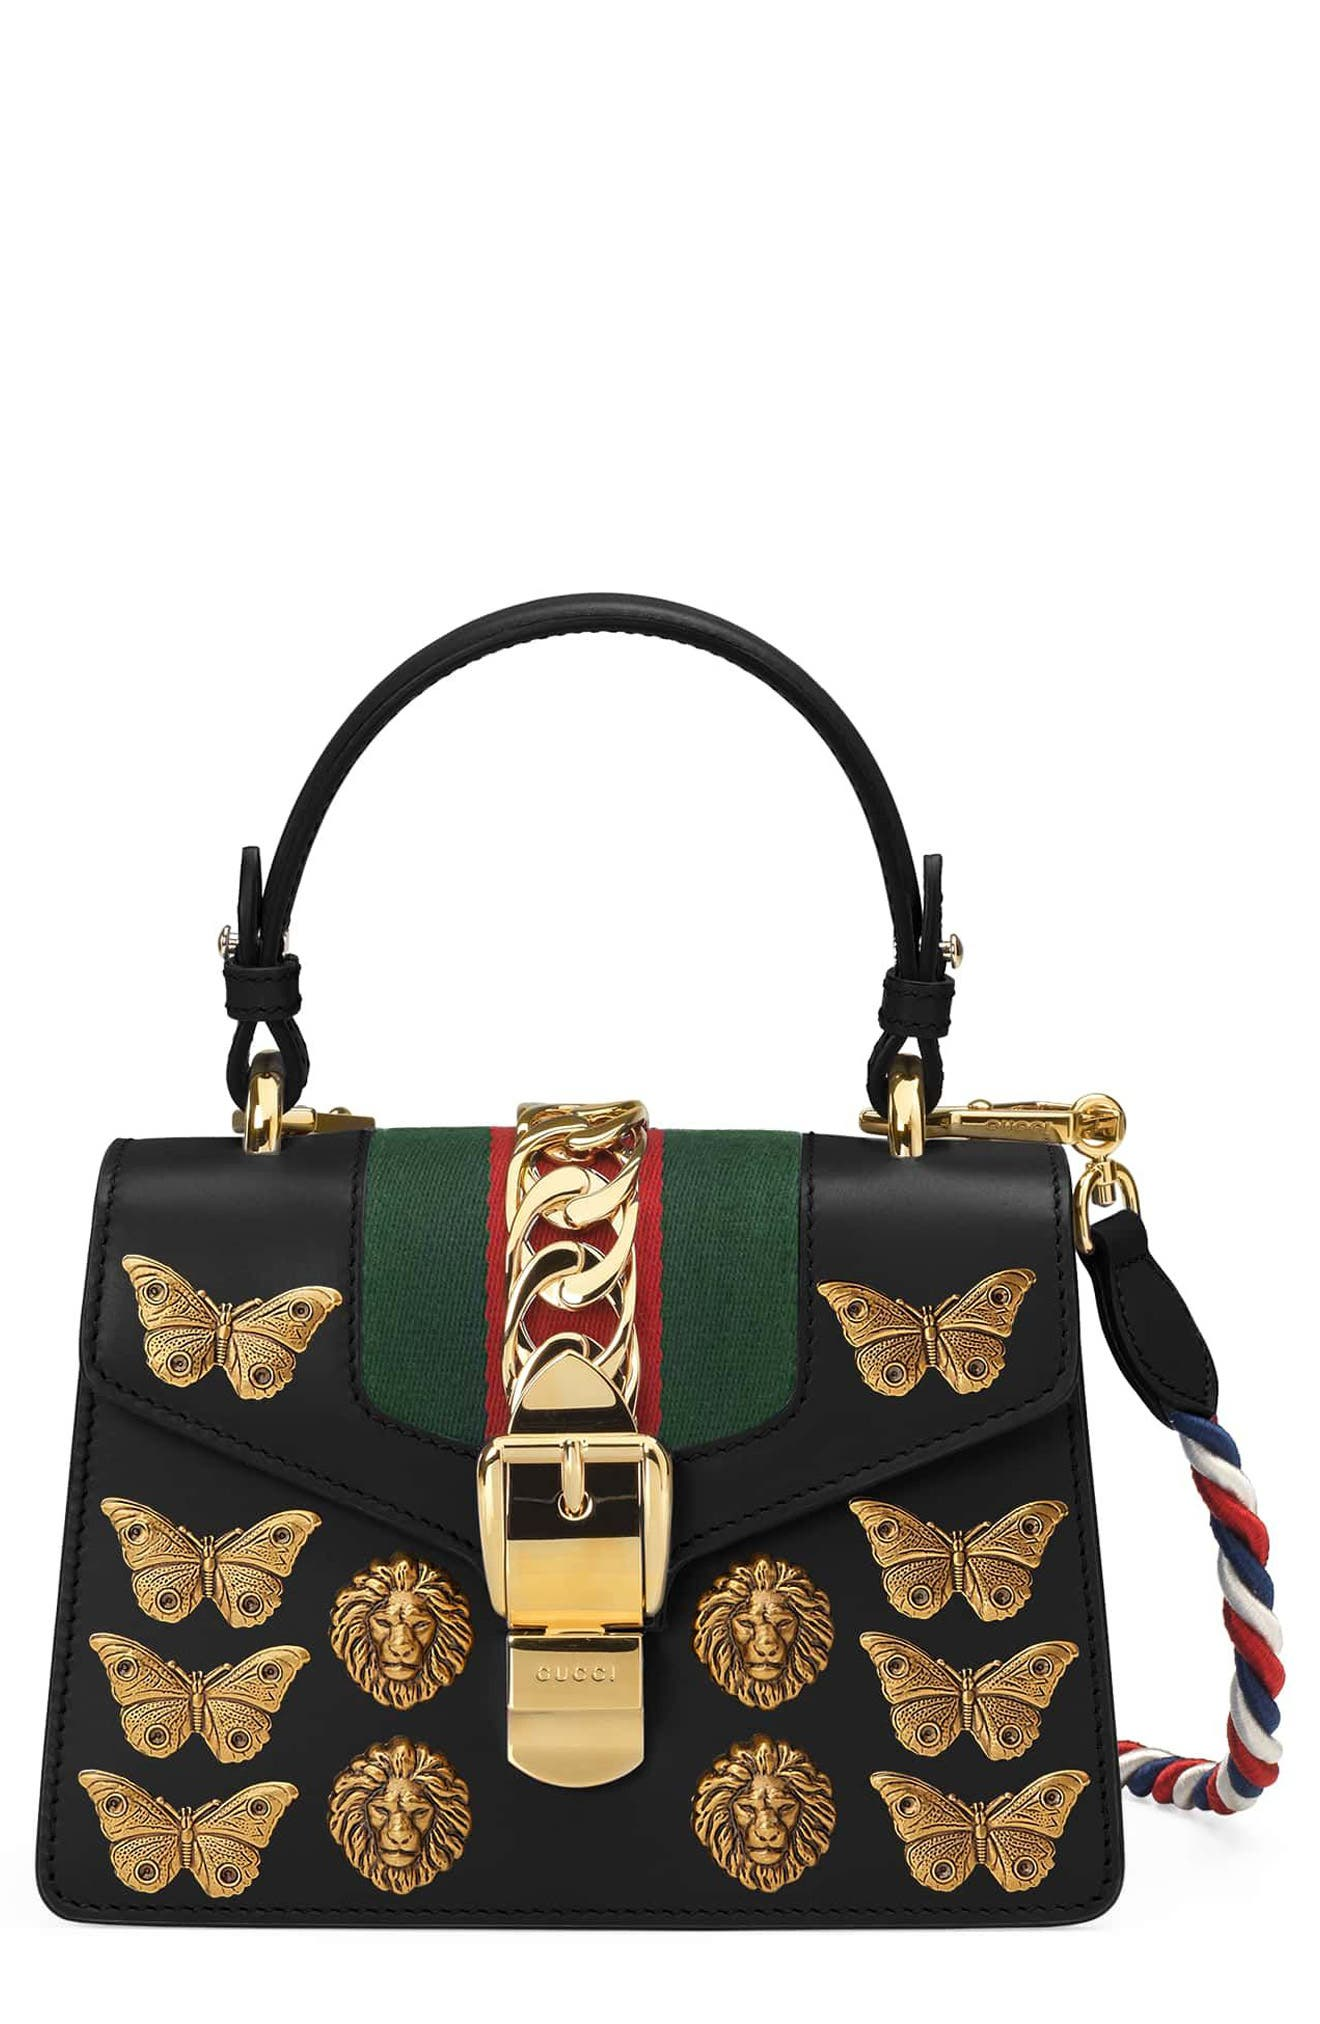 GUCCI Mini Sylvie Animal Studs Leather Shoulder Bag